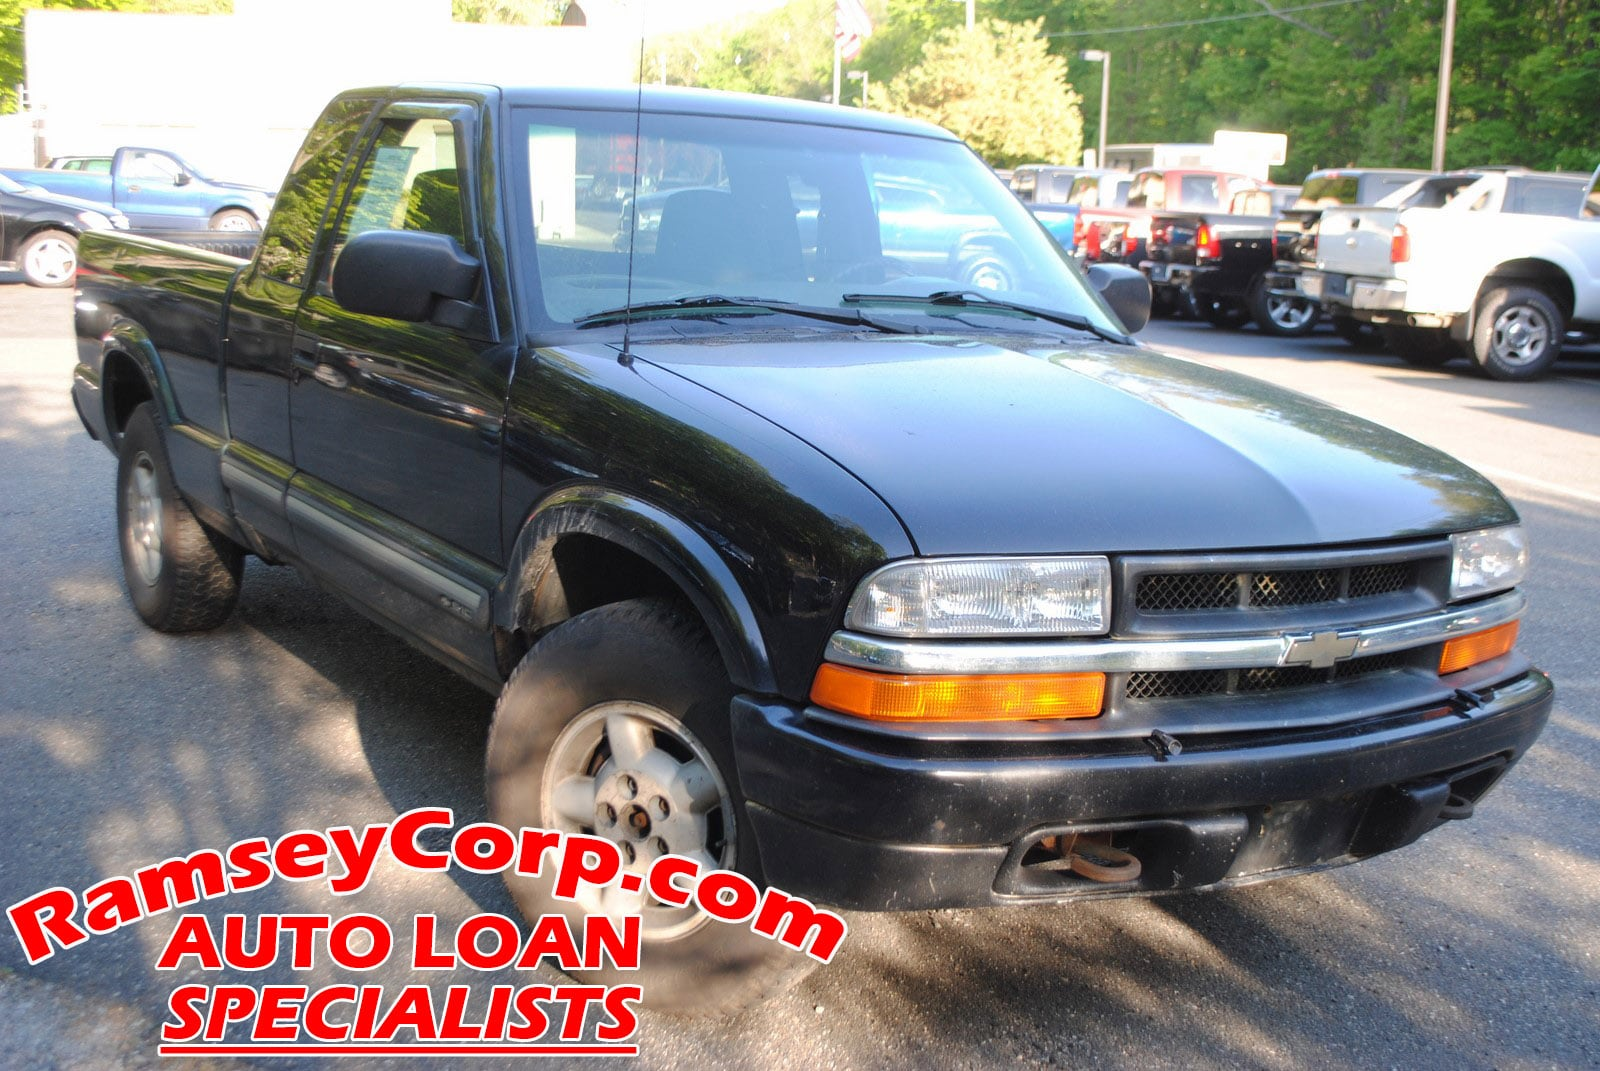 2001 Chevrolet S-10 LS 4.3 Truck Extended Cab